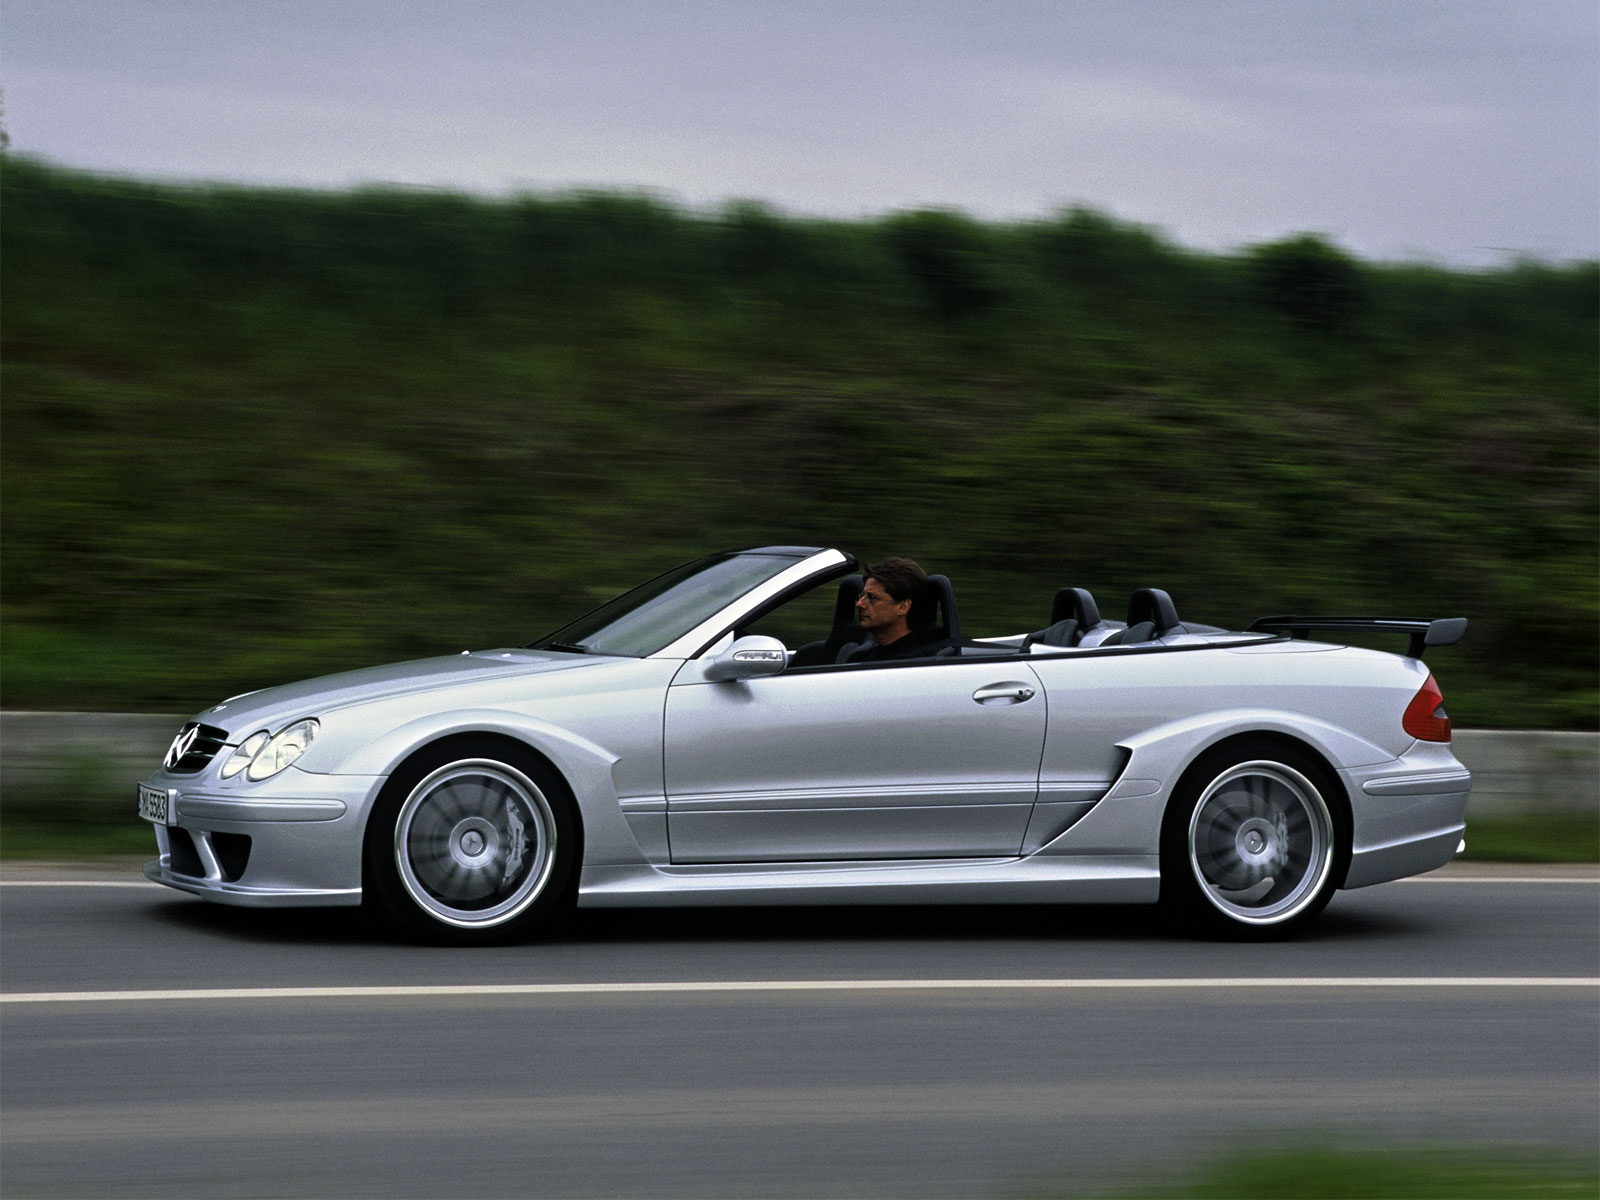 Mercedes-Benz CLK DTM AMG Cabriolet photo 05